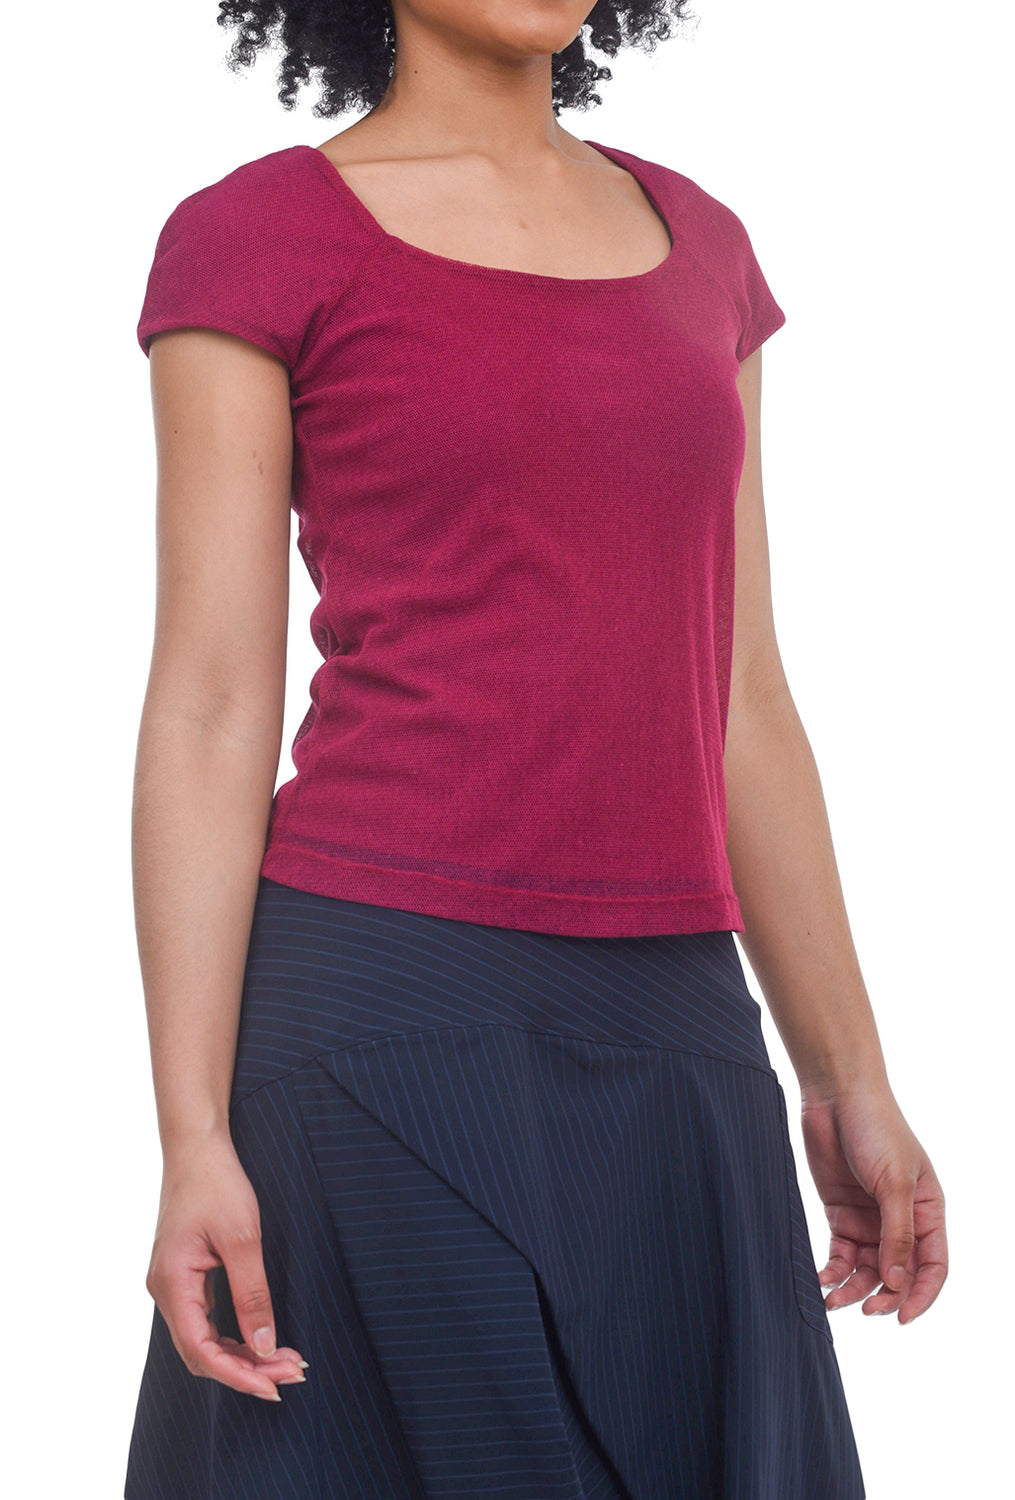 Porto Fanny Top, Raspberry